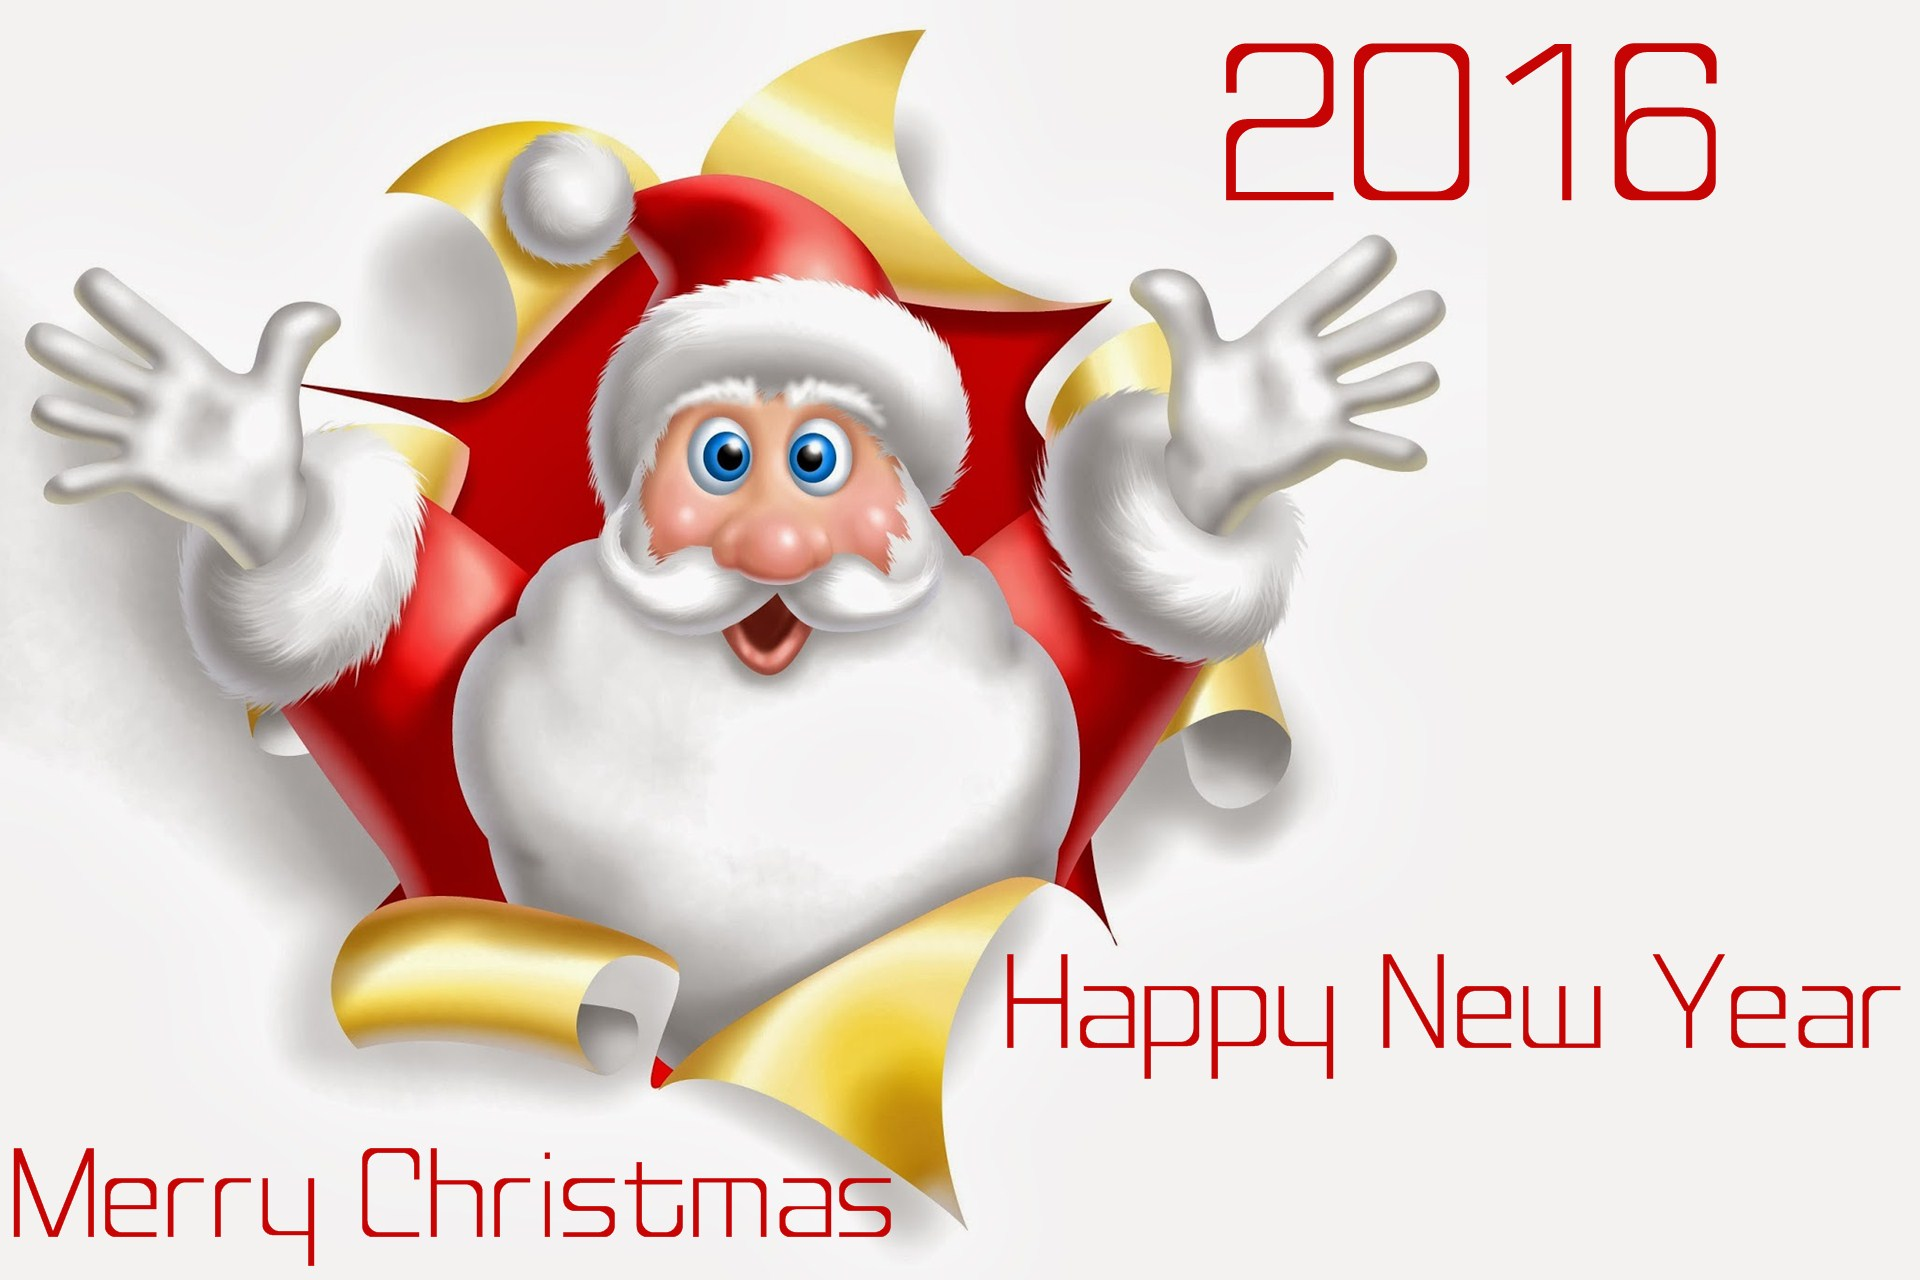 Merry Christmas Quotes - Wishes & SMS Greetings w/ Images 2016